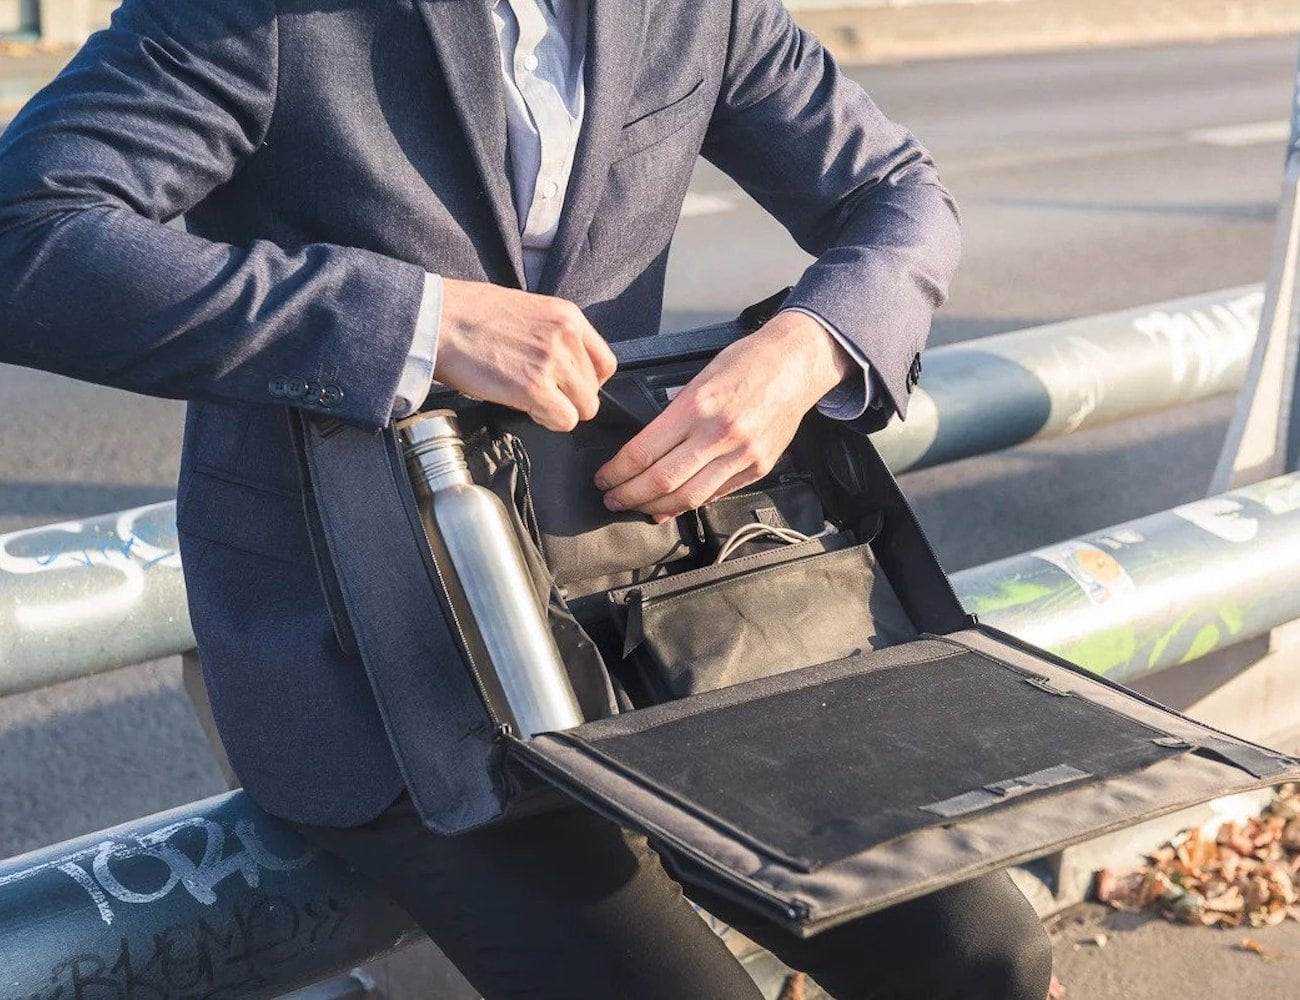 Urban Nomads Workstation Laptop Bag lets you work absolutely anywhere loading=